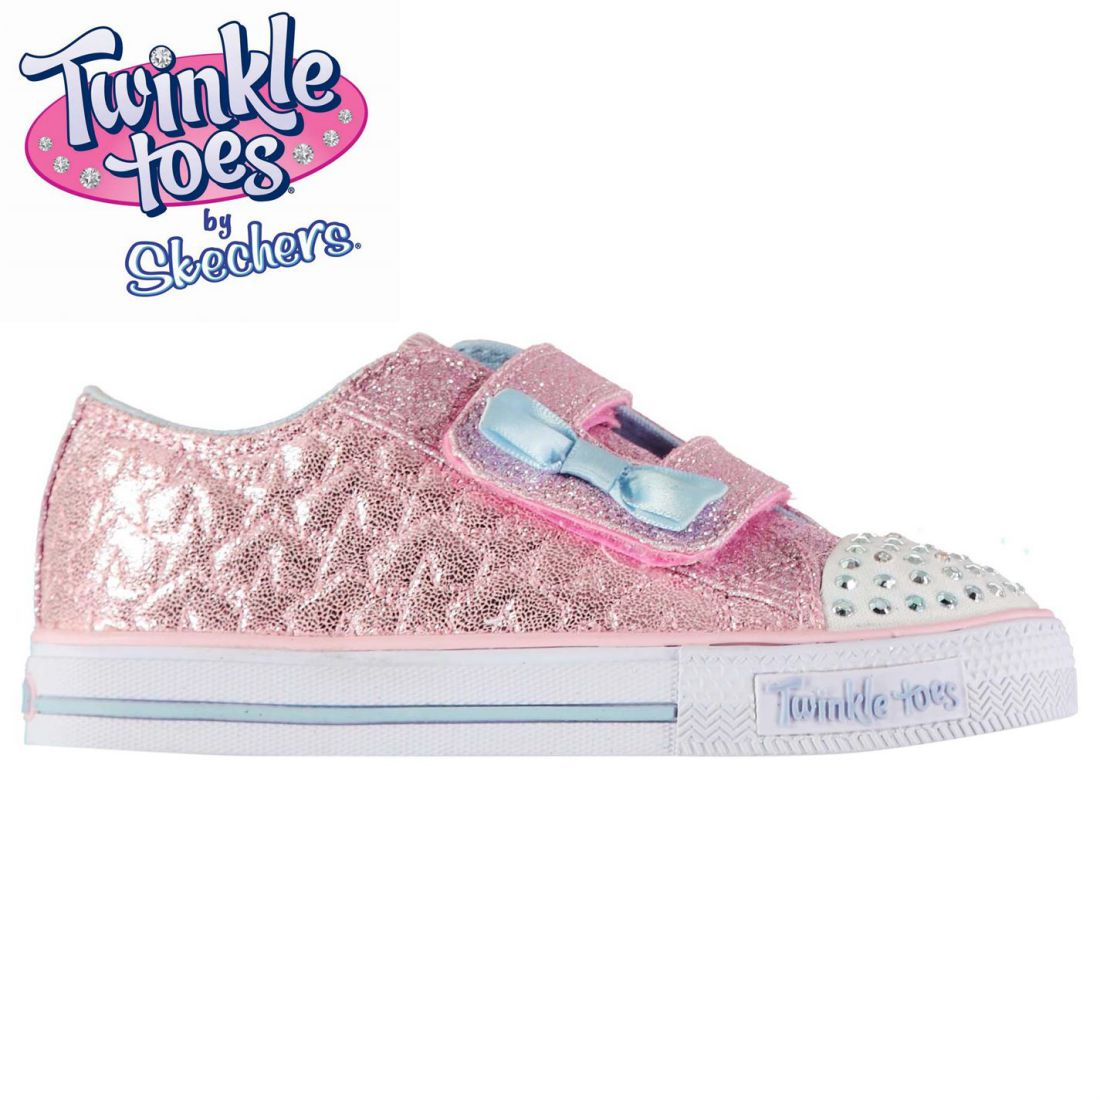 Skechers Twinkle Toes kid's shoes in E1 London for £8.00 for